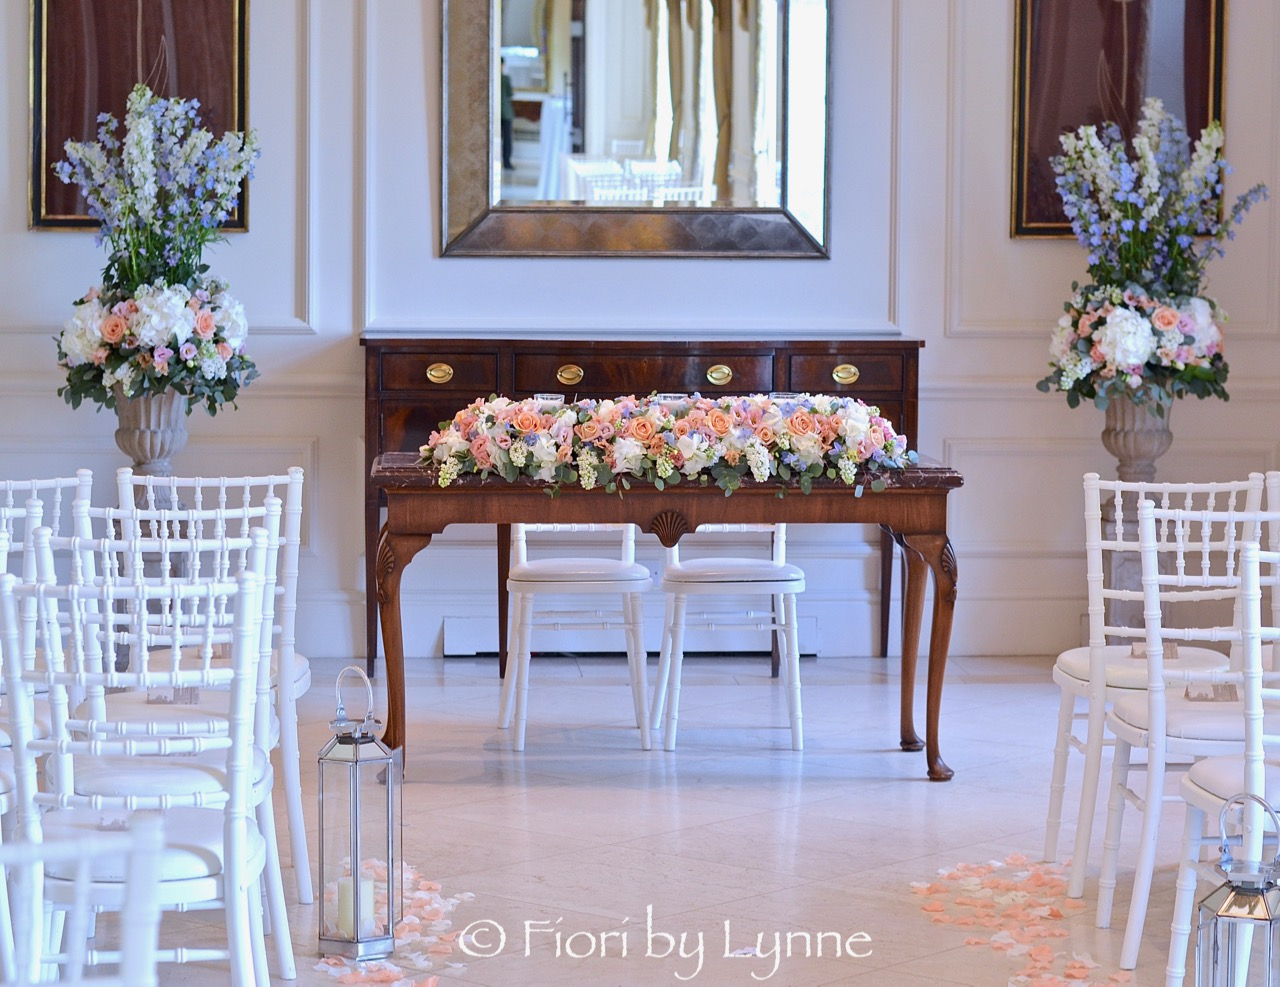 ceremony-flowers-urns+table-designs in summer peach,blue-white,pink.jpg